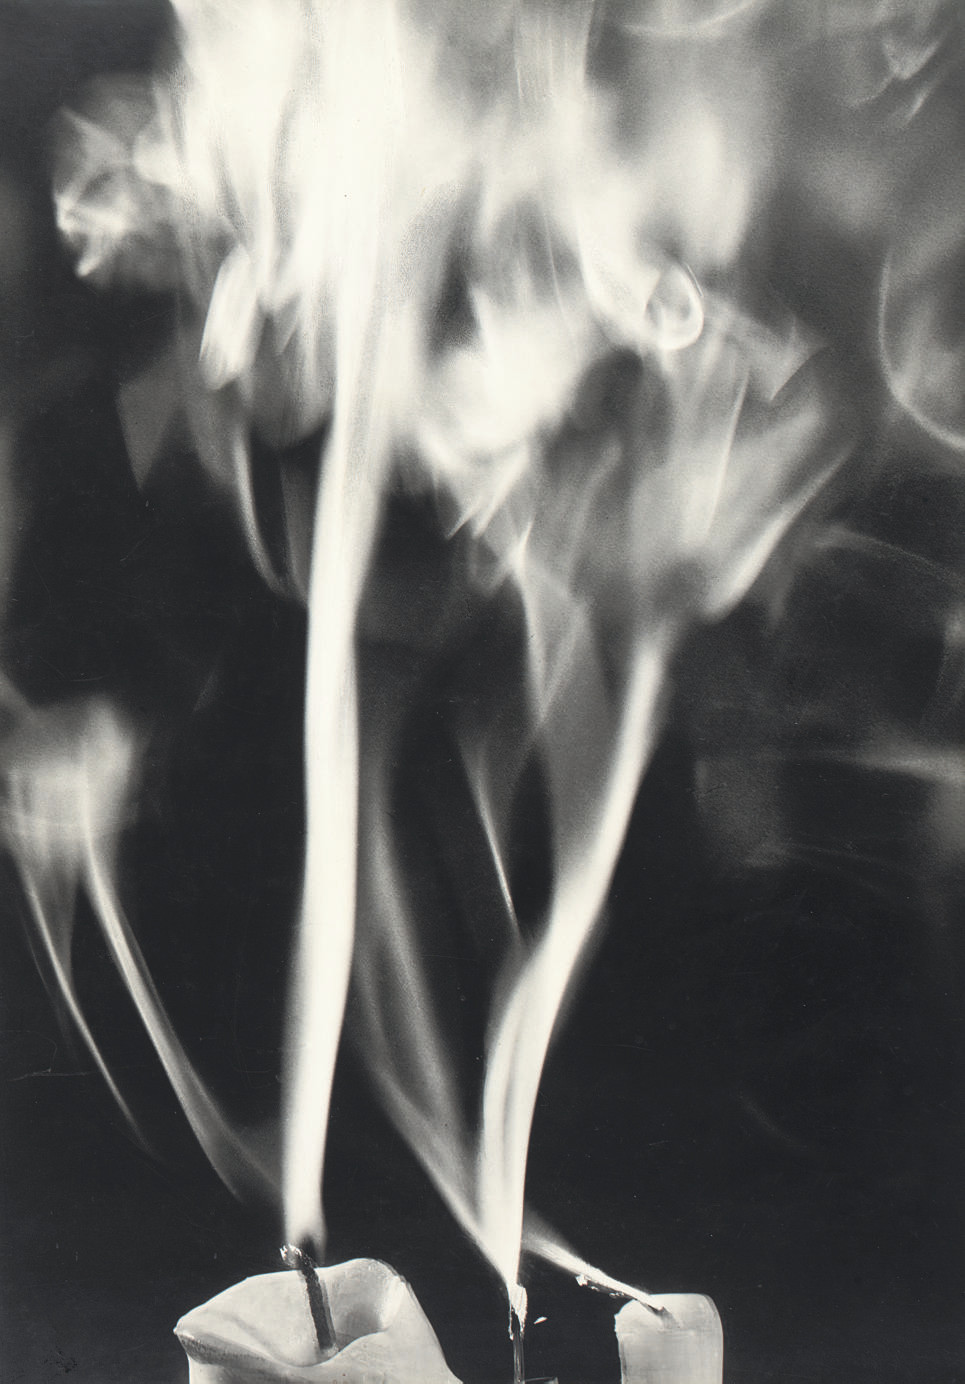 Candle studies, before 1933